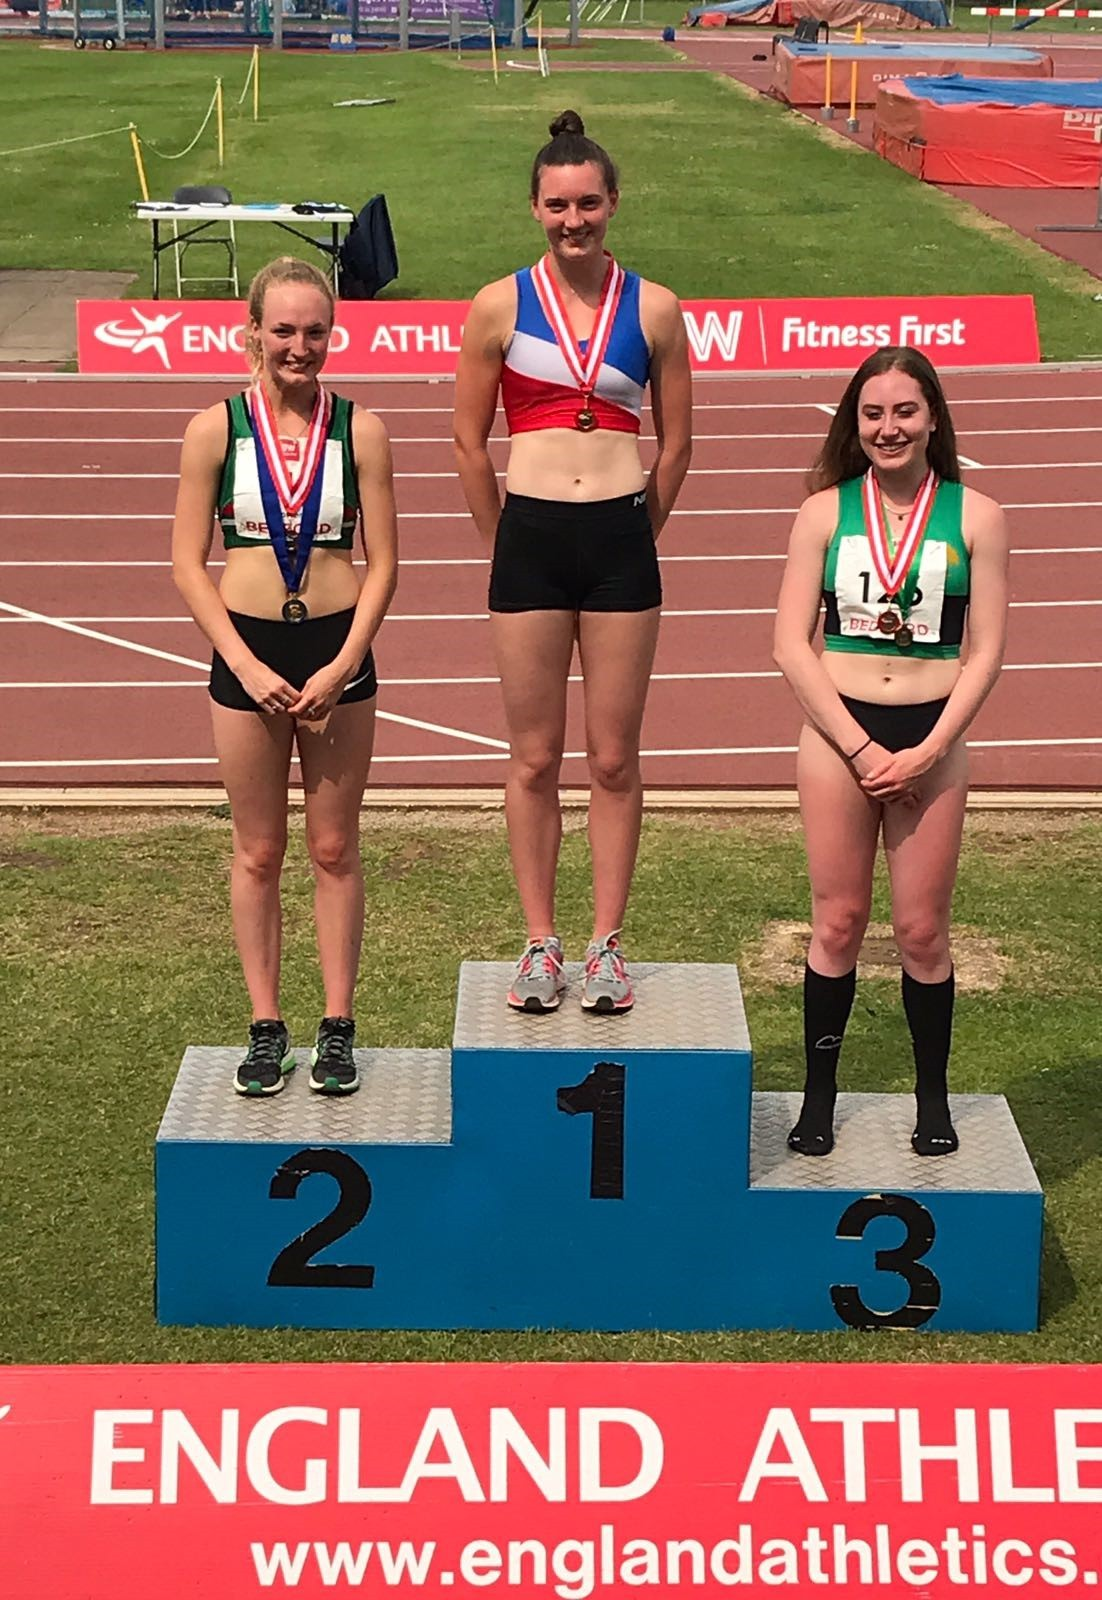 GOLDEN DELIGHT: Oxford City AC's Jade O'Dowda stands on the top step of the podium after winning the heptathlon at the England U20 Combined Events Championships in Bedford